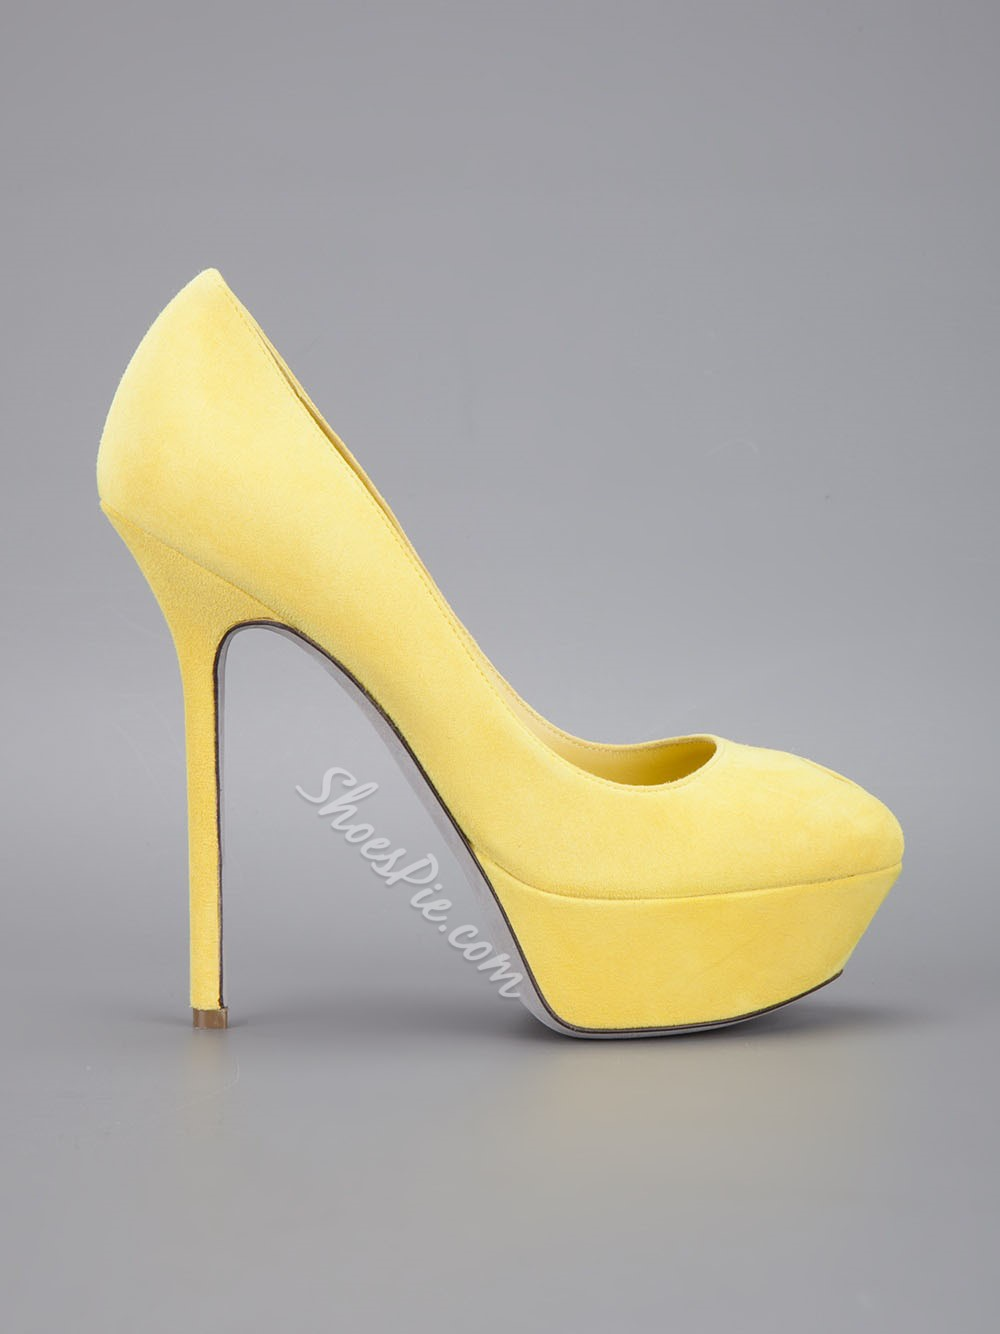 Yellow Suede Upper Peep-toe Heels- Shoespie.com